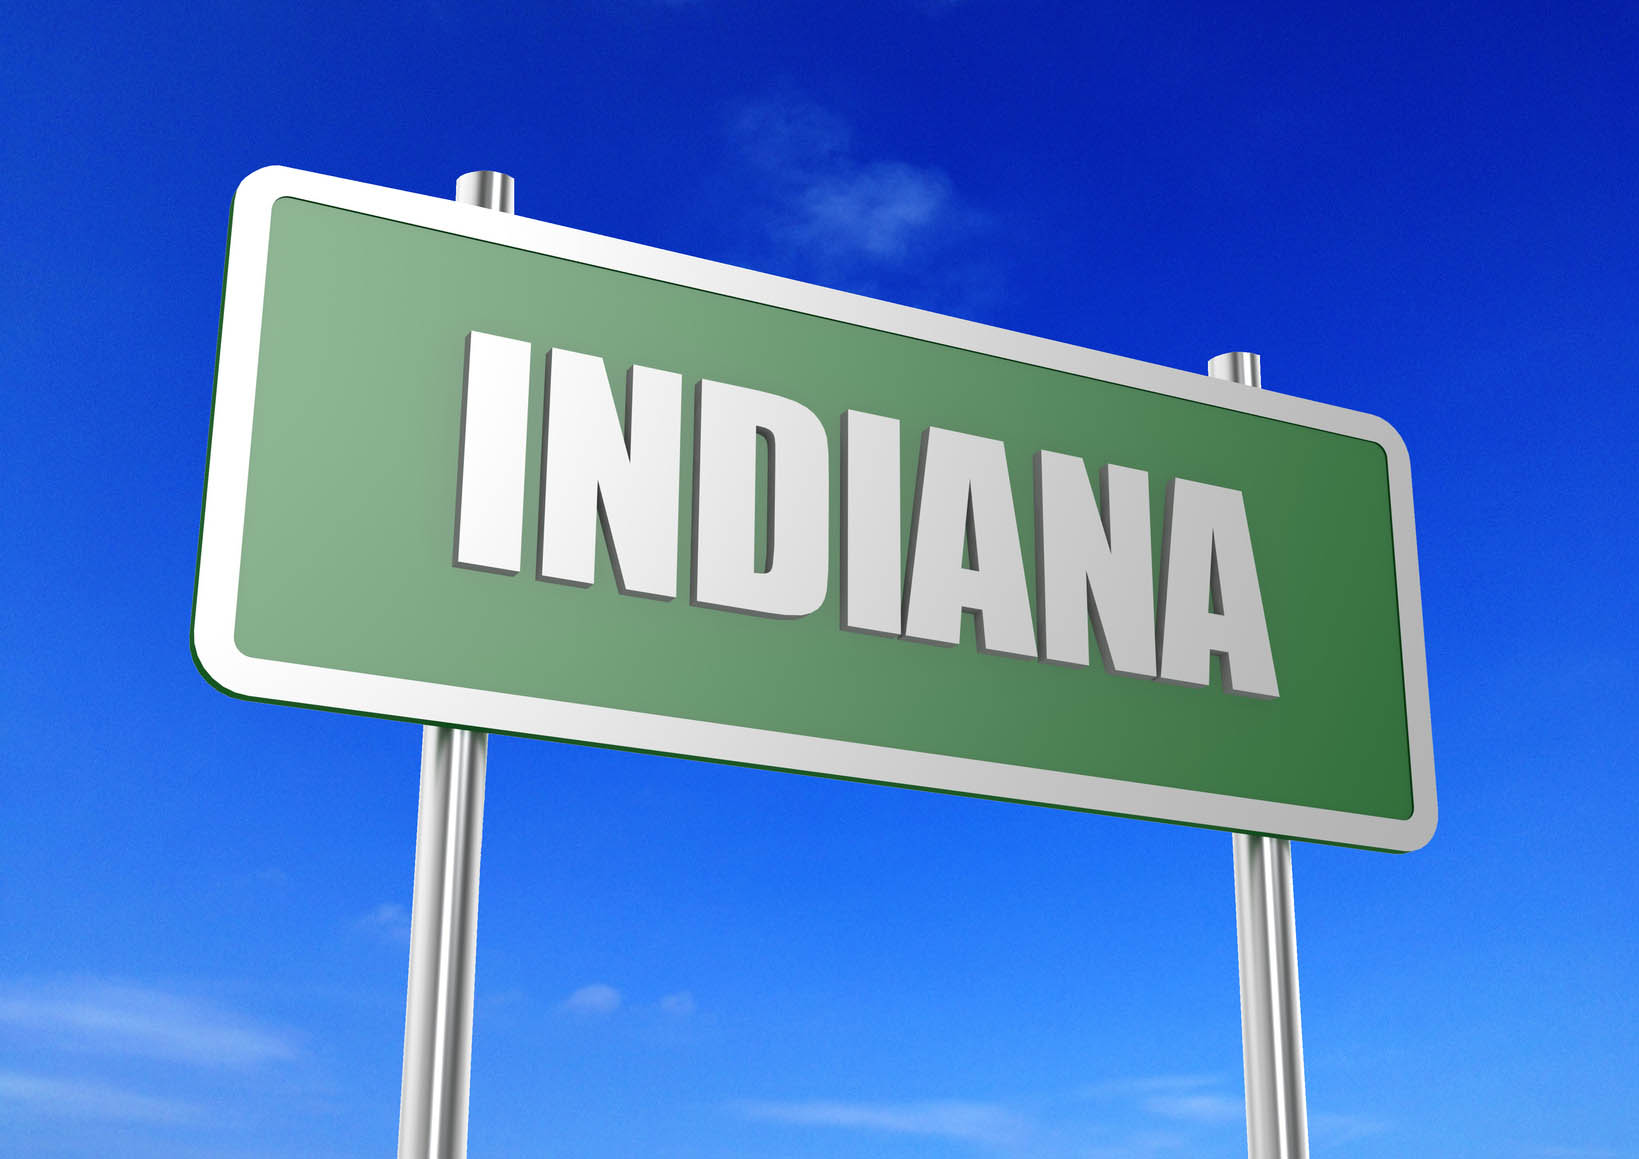 Southeastern Indiana Gross Sales Volume Increased 40